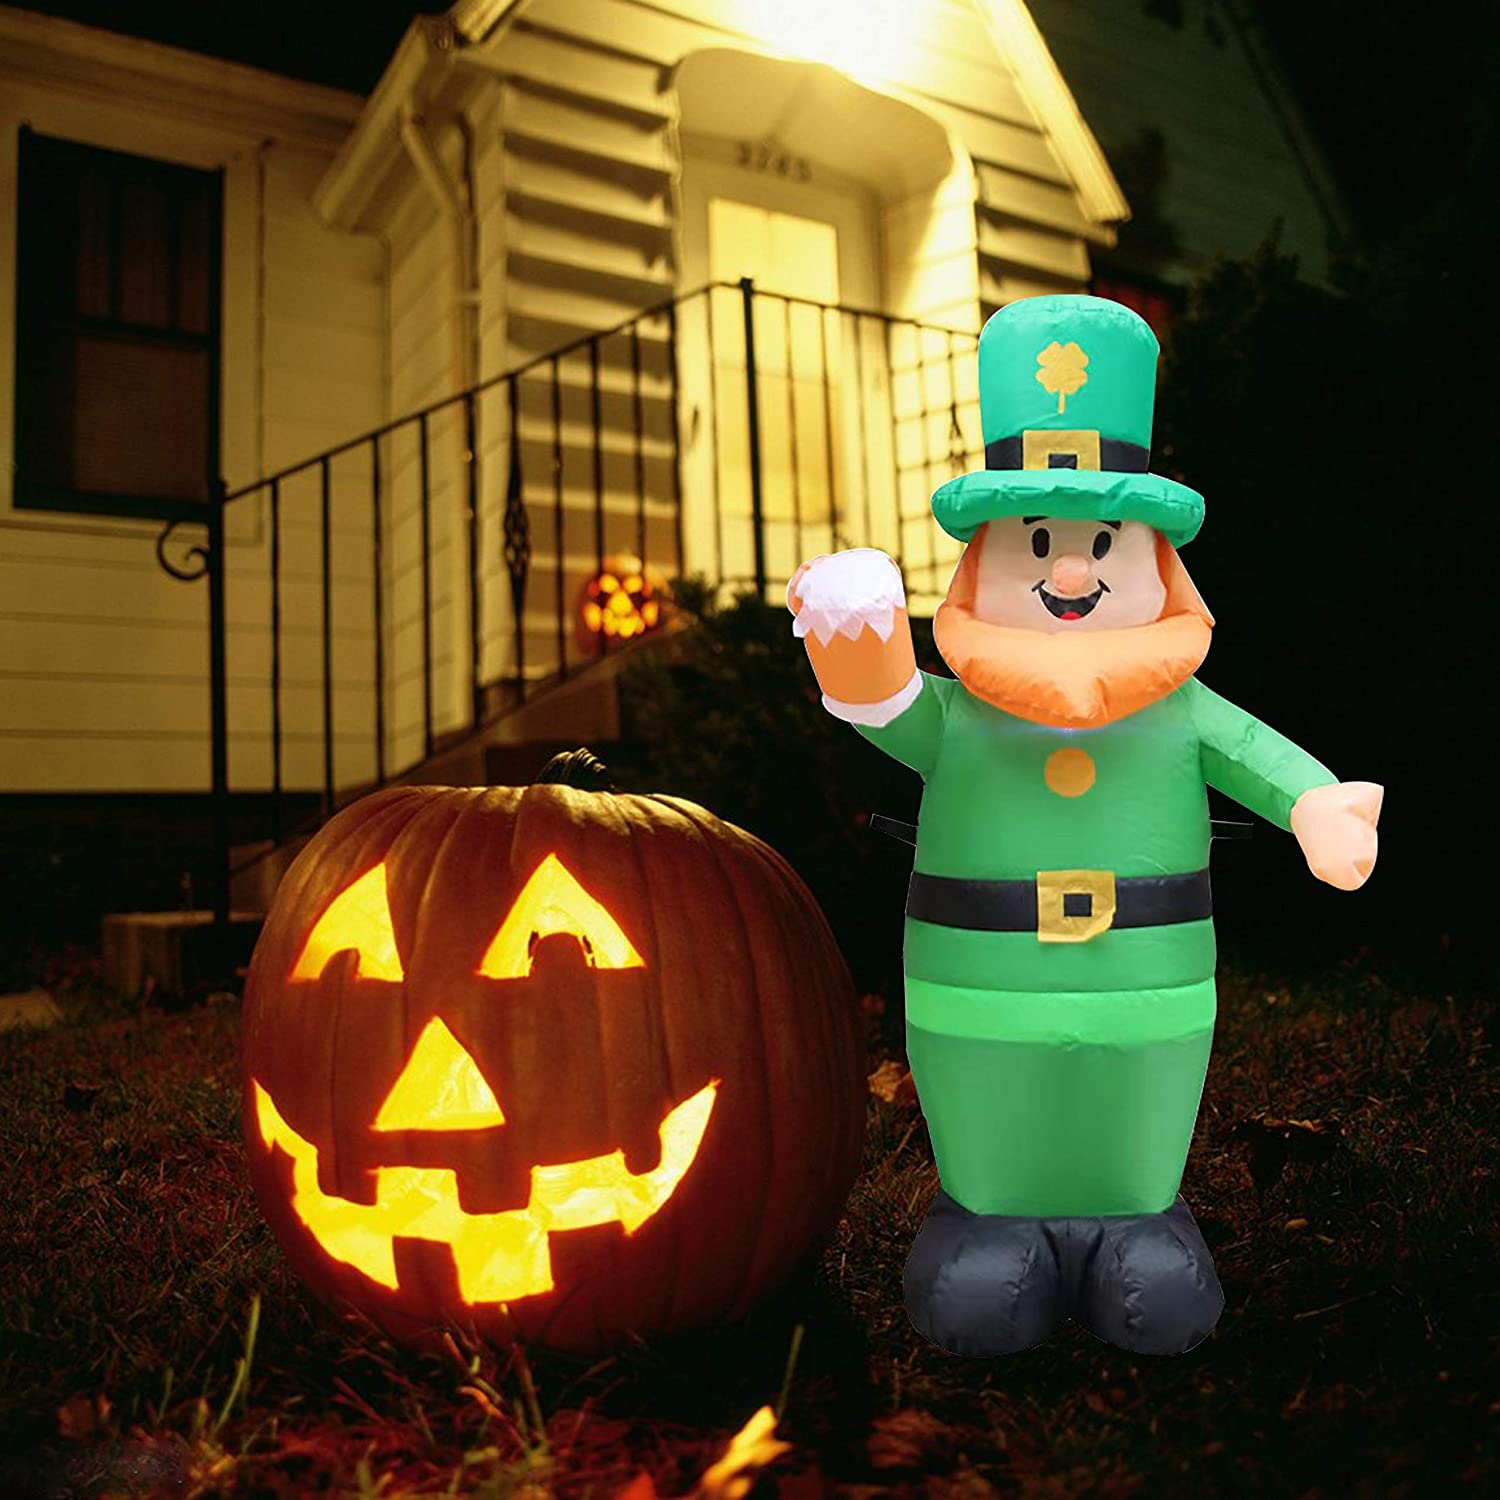 Glzifom 3.3 FT Lighted St Patricks Day Inflatables, Leprechaun Inflatable with Stake, Waterproof Blow up Leprechaun for Outdoor Lawn Yard Holiday Decoration